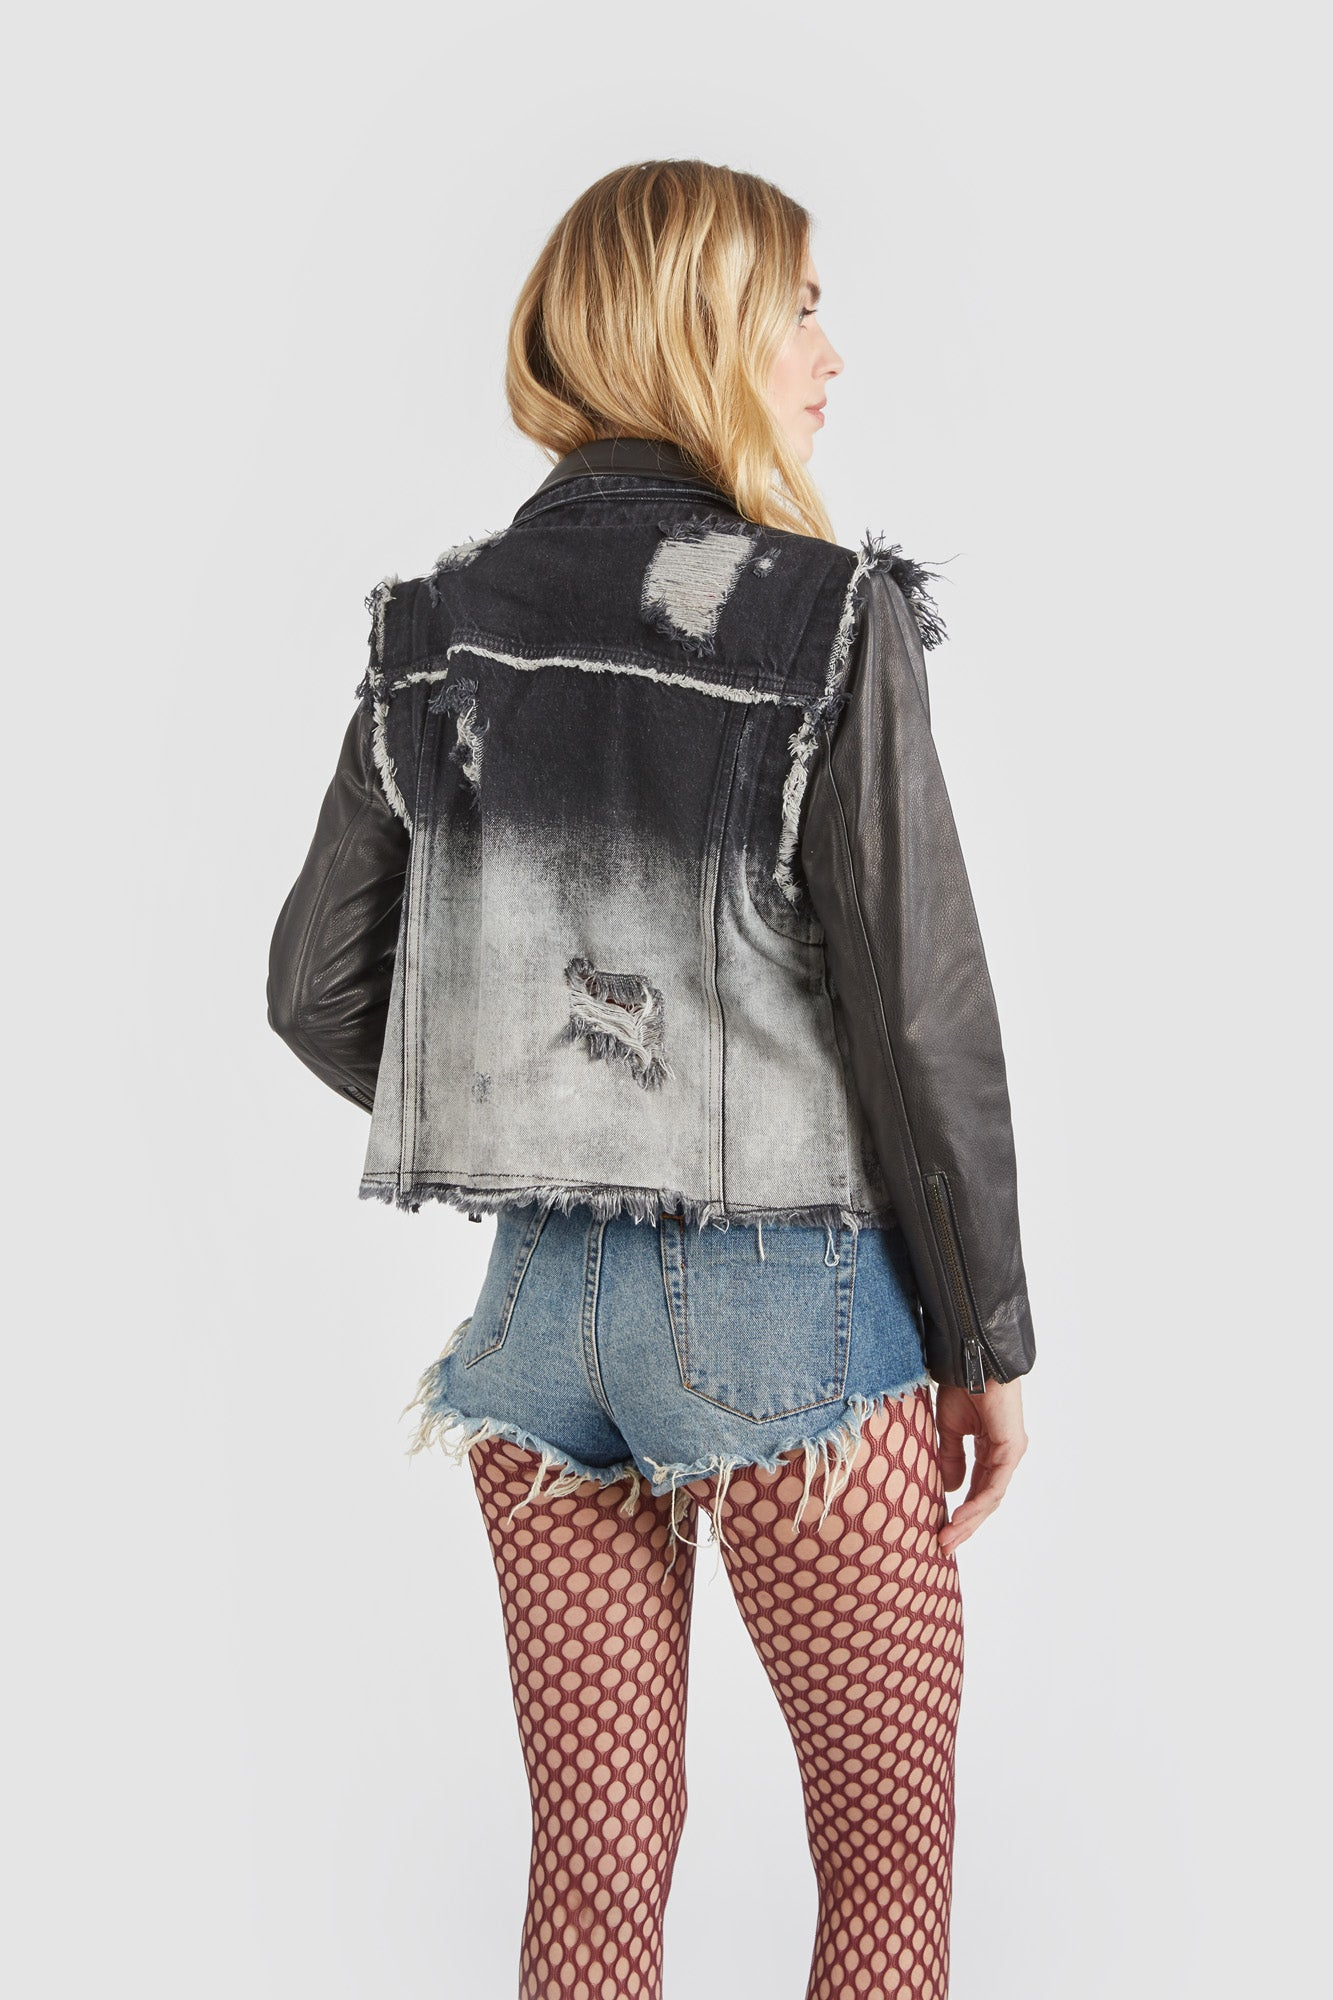 The To The Max Denim Vest